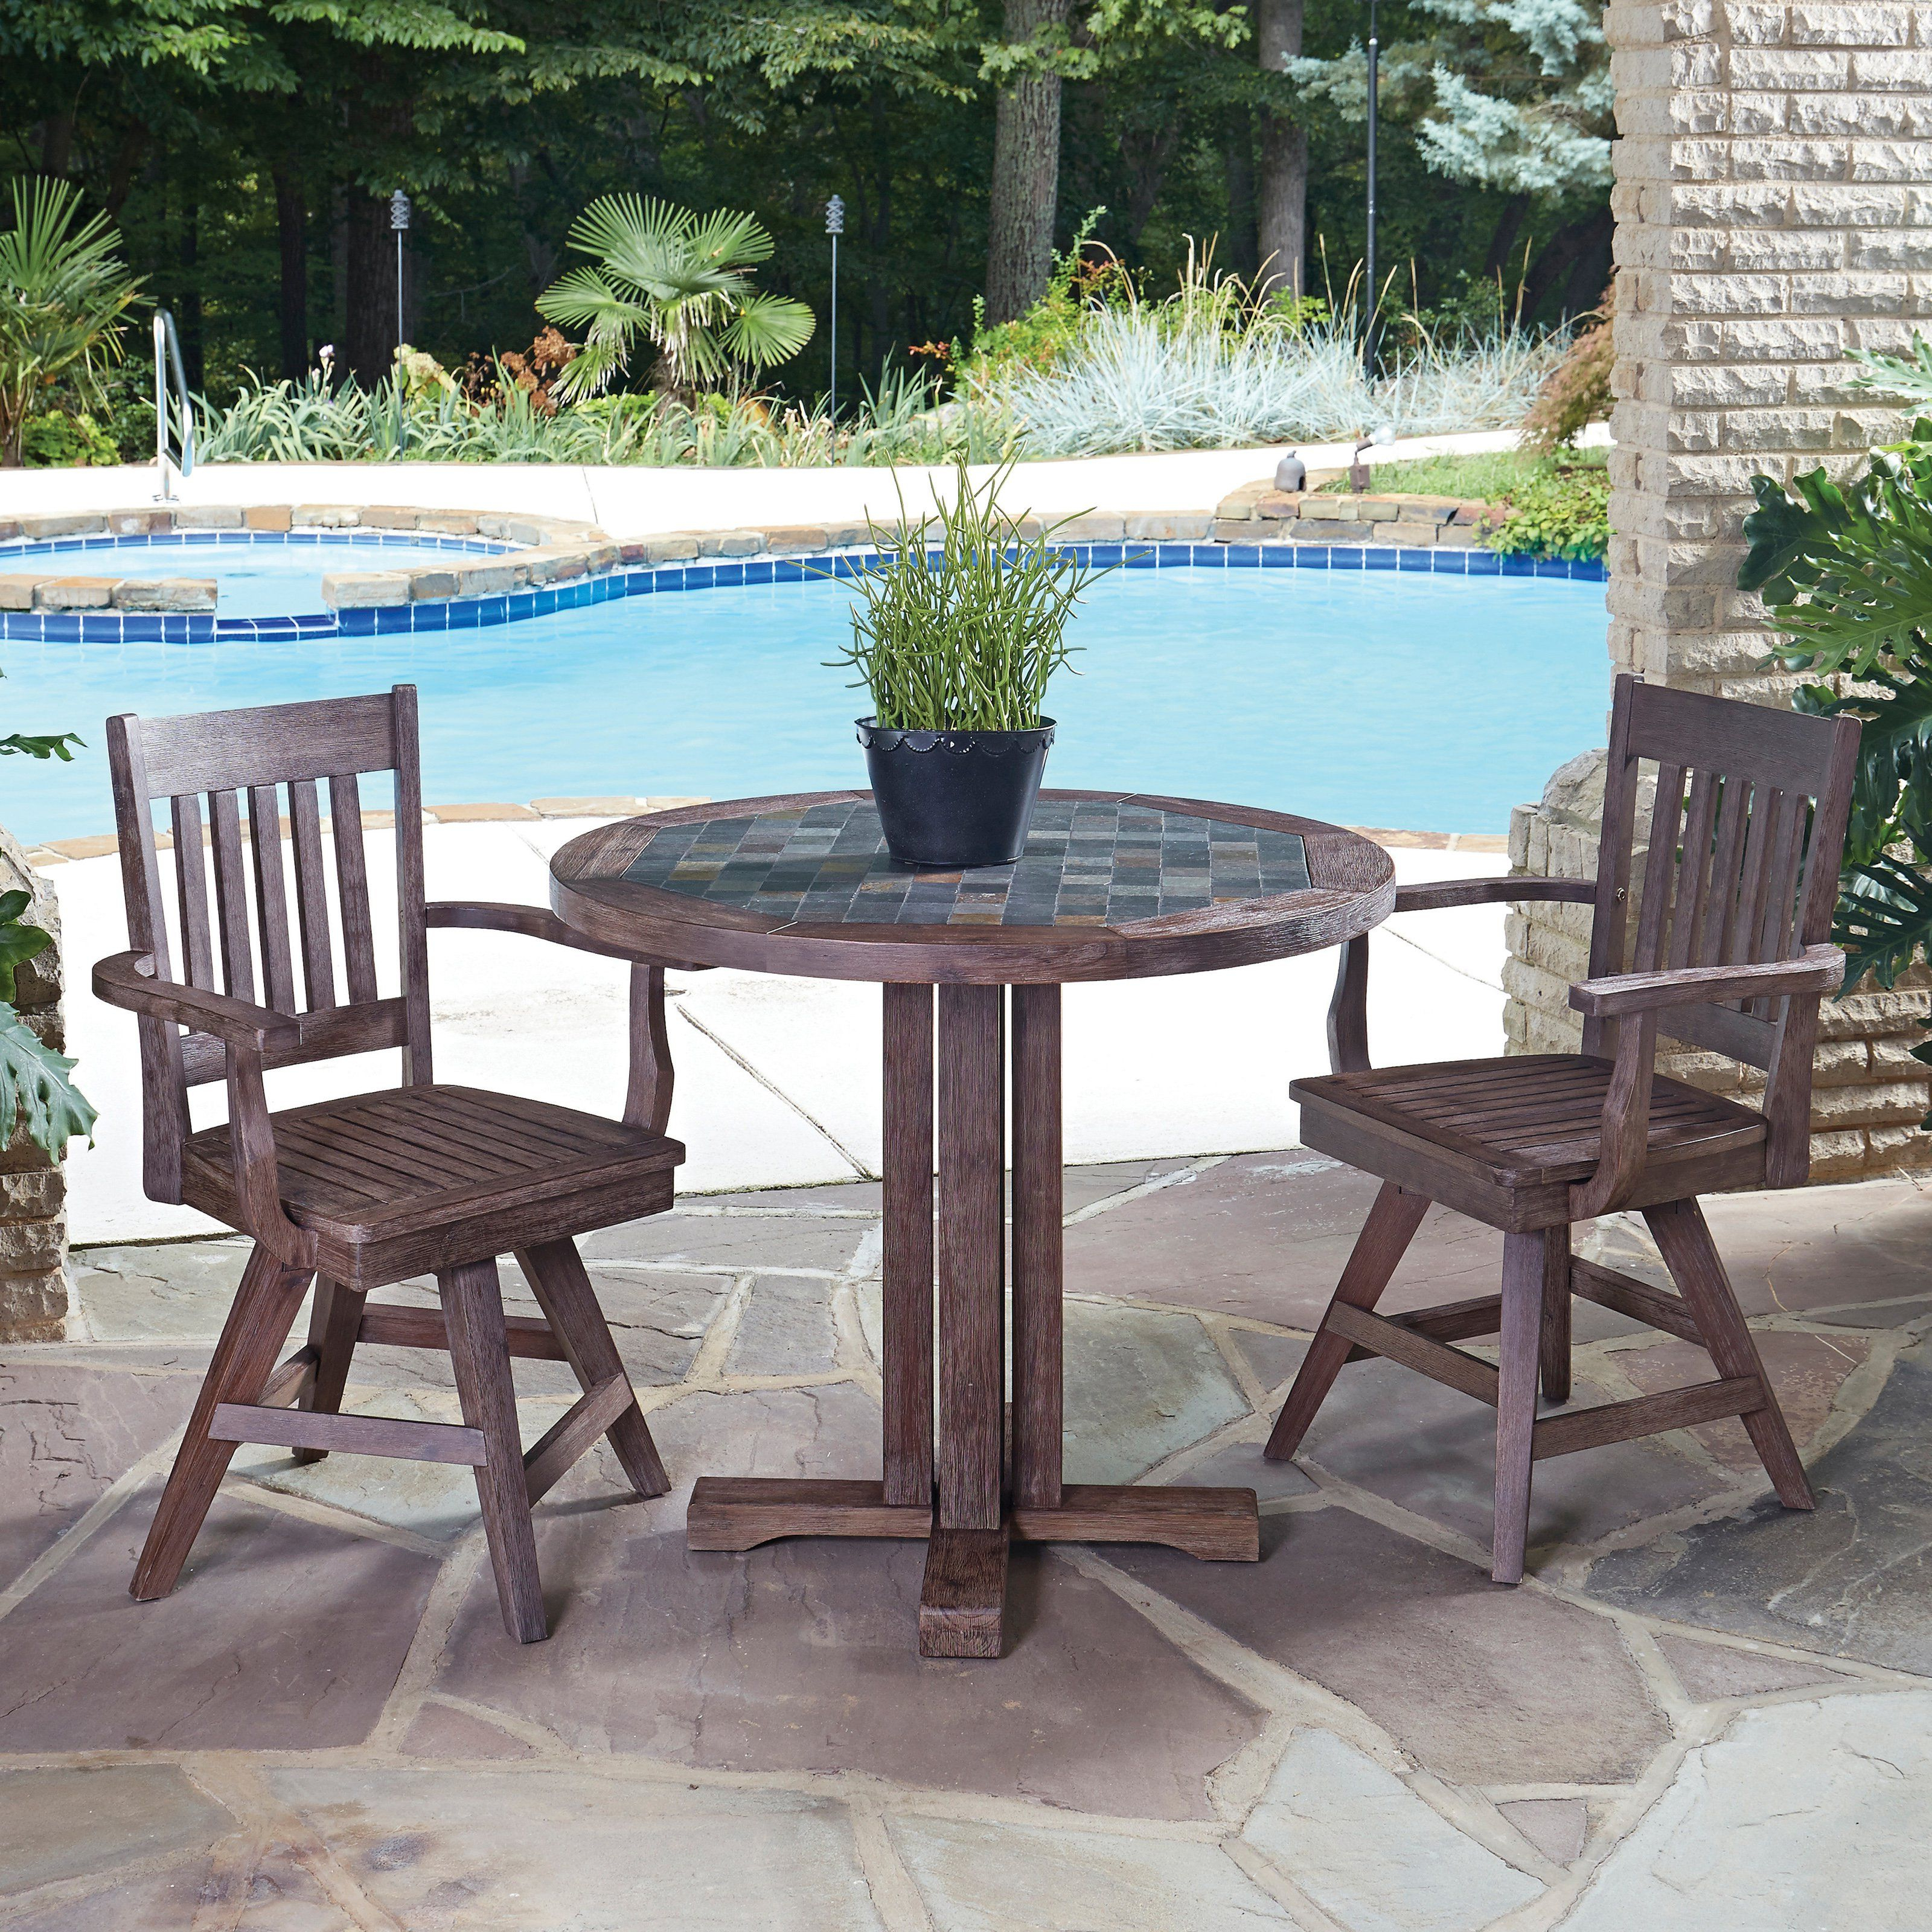 Tarleton 5 Piece Dining Sets Throughout Popular Outdoor Home Styles Morocco Wood 3 Piece Round Patio Bistro Set (View 12 of 25)